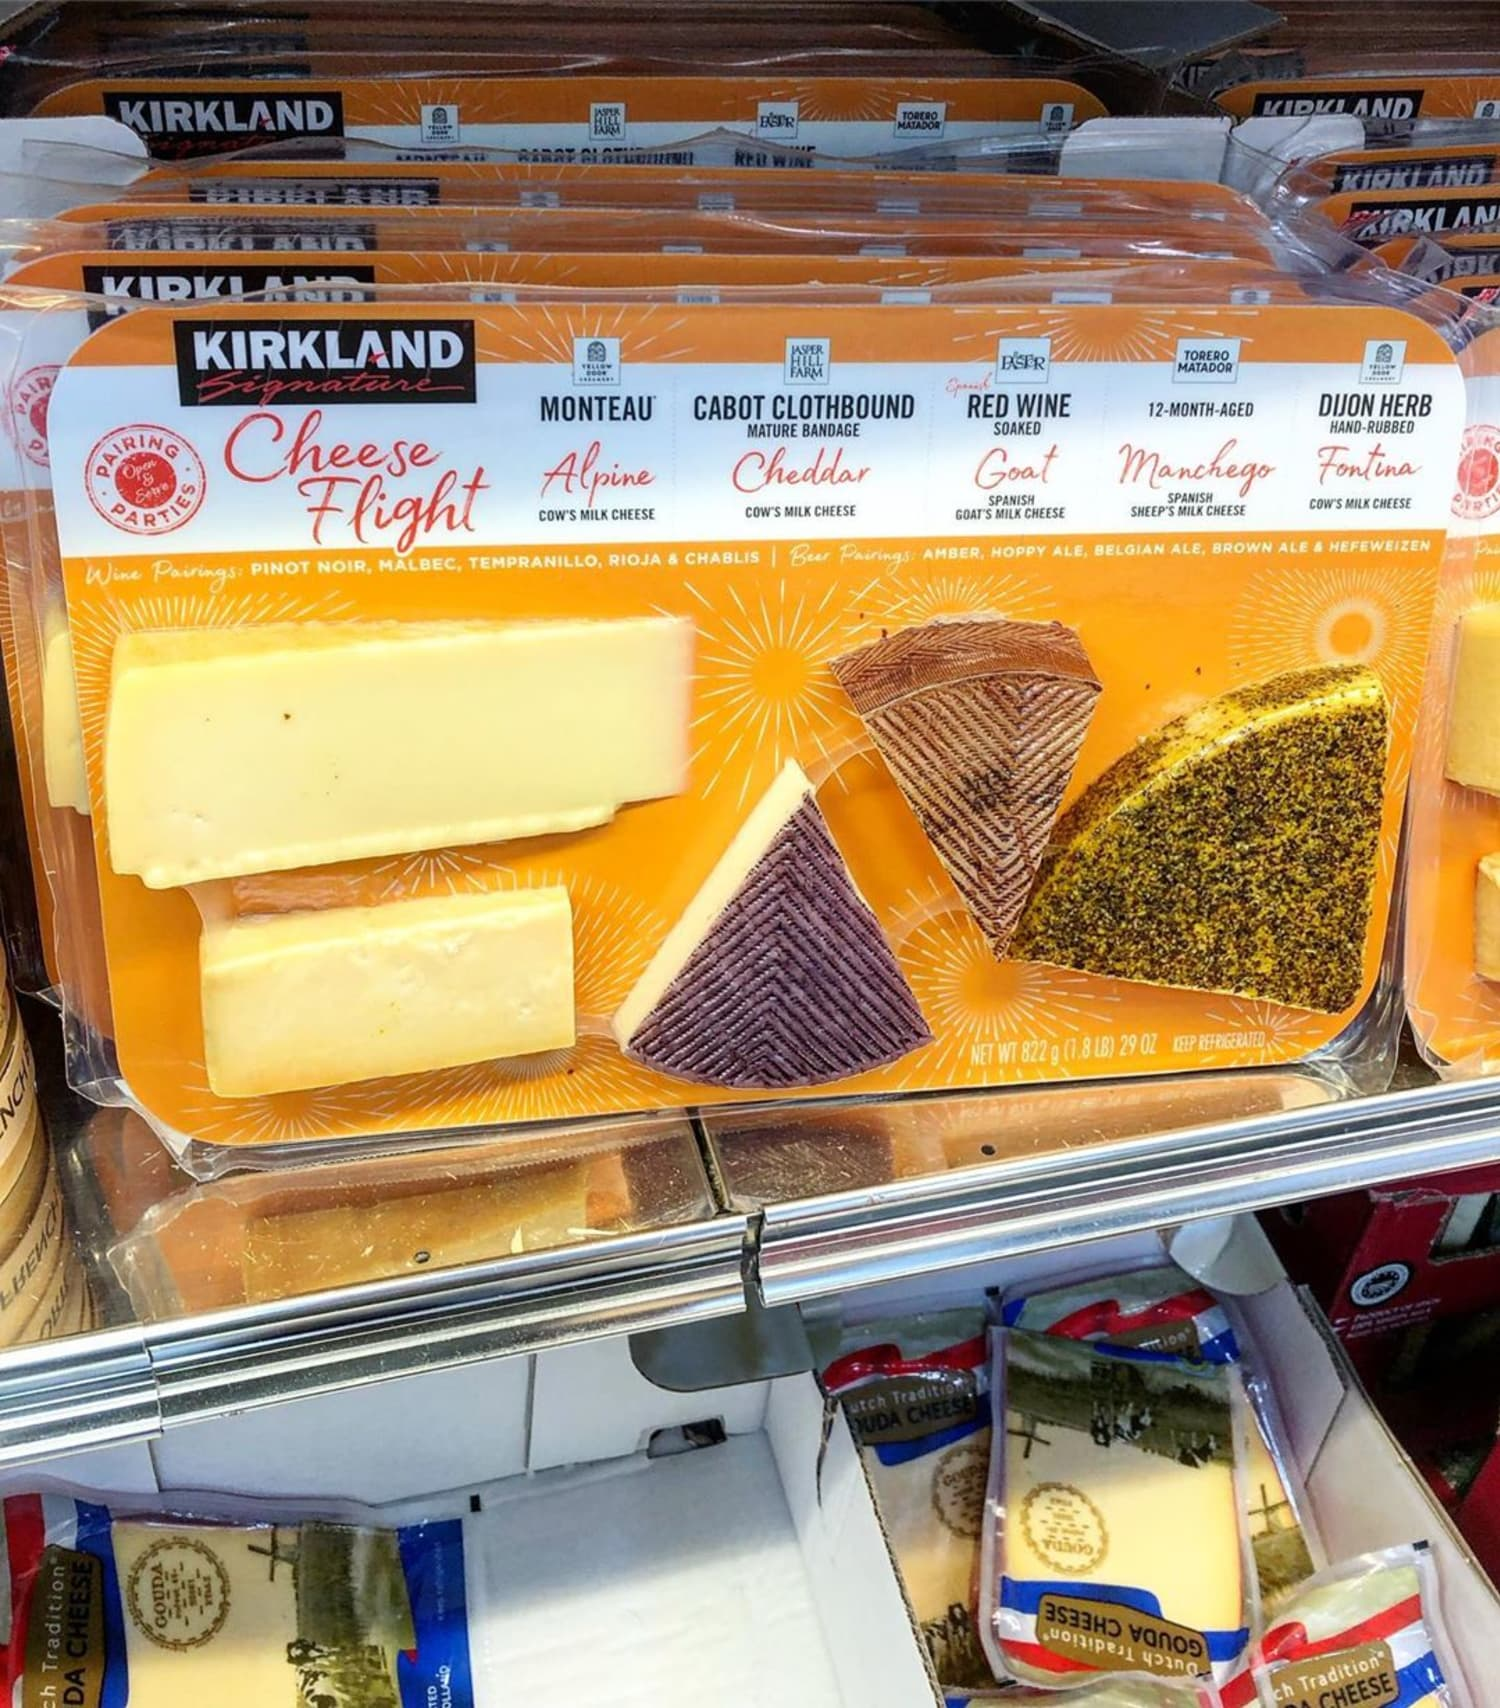 Costco S New Cheese Flight Sounds Like The Best Snack On The Planet Kitchn